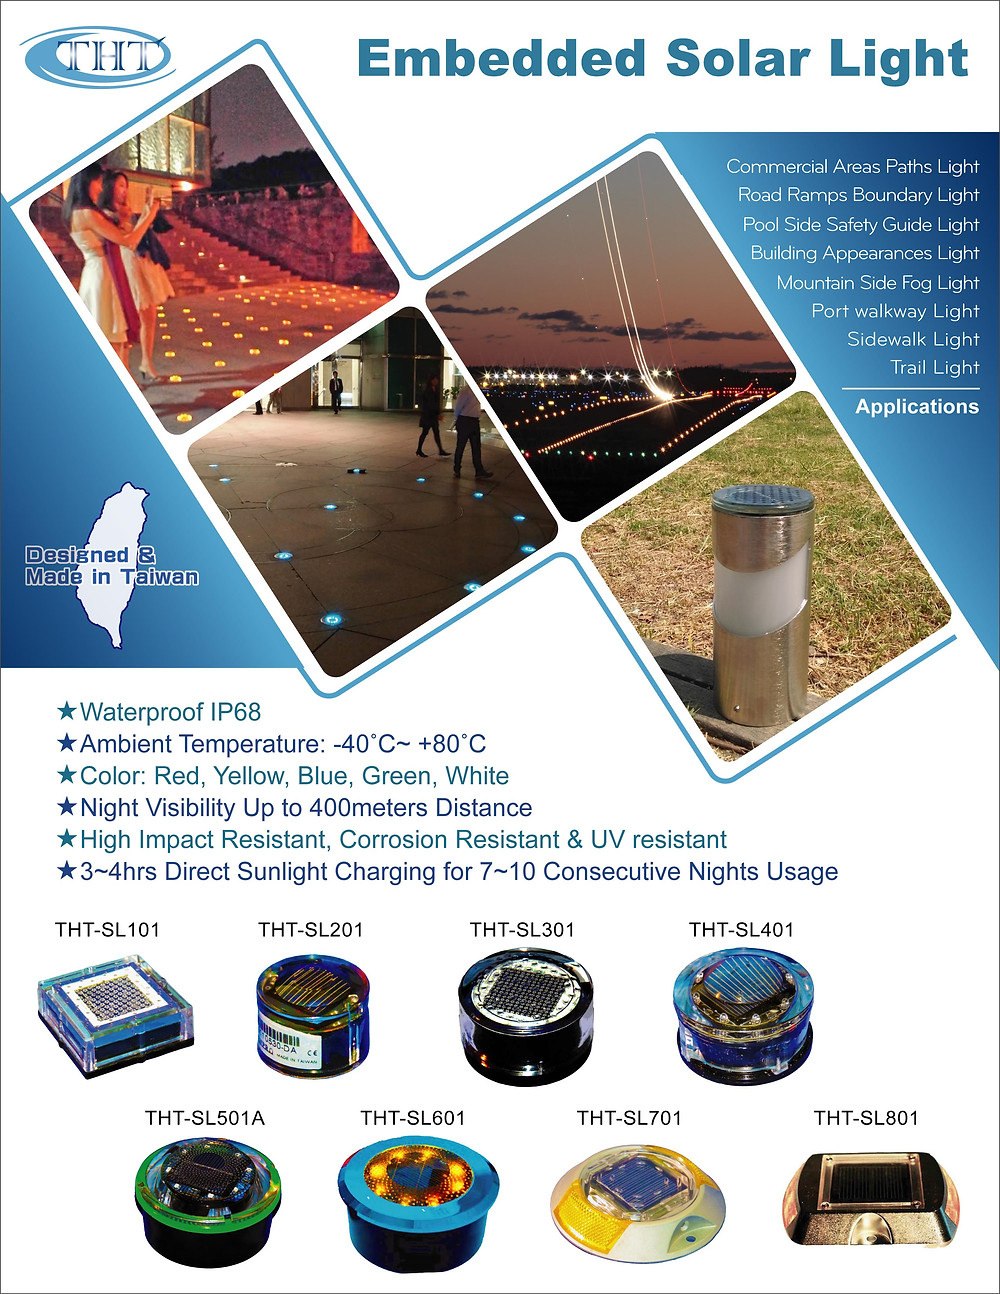 Embedded Solar Lights for Outdoor Aesthetic & Route Safety Guide Illumination.